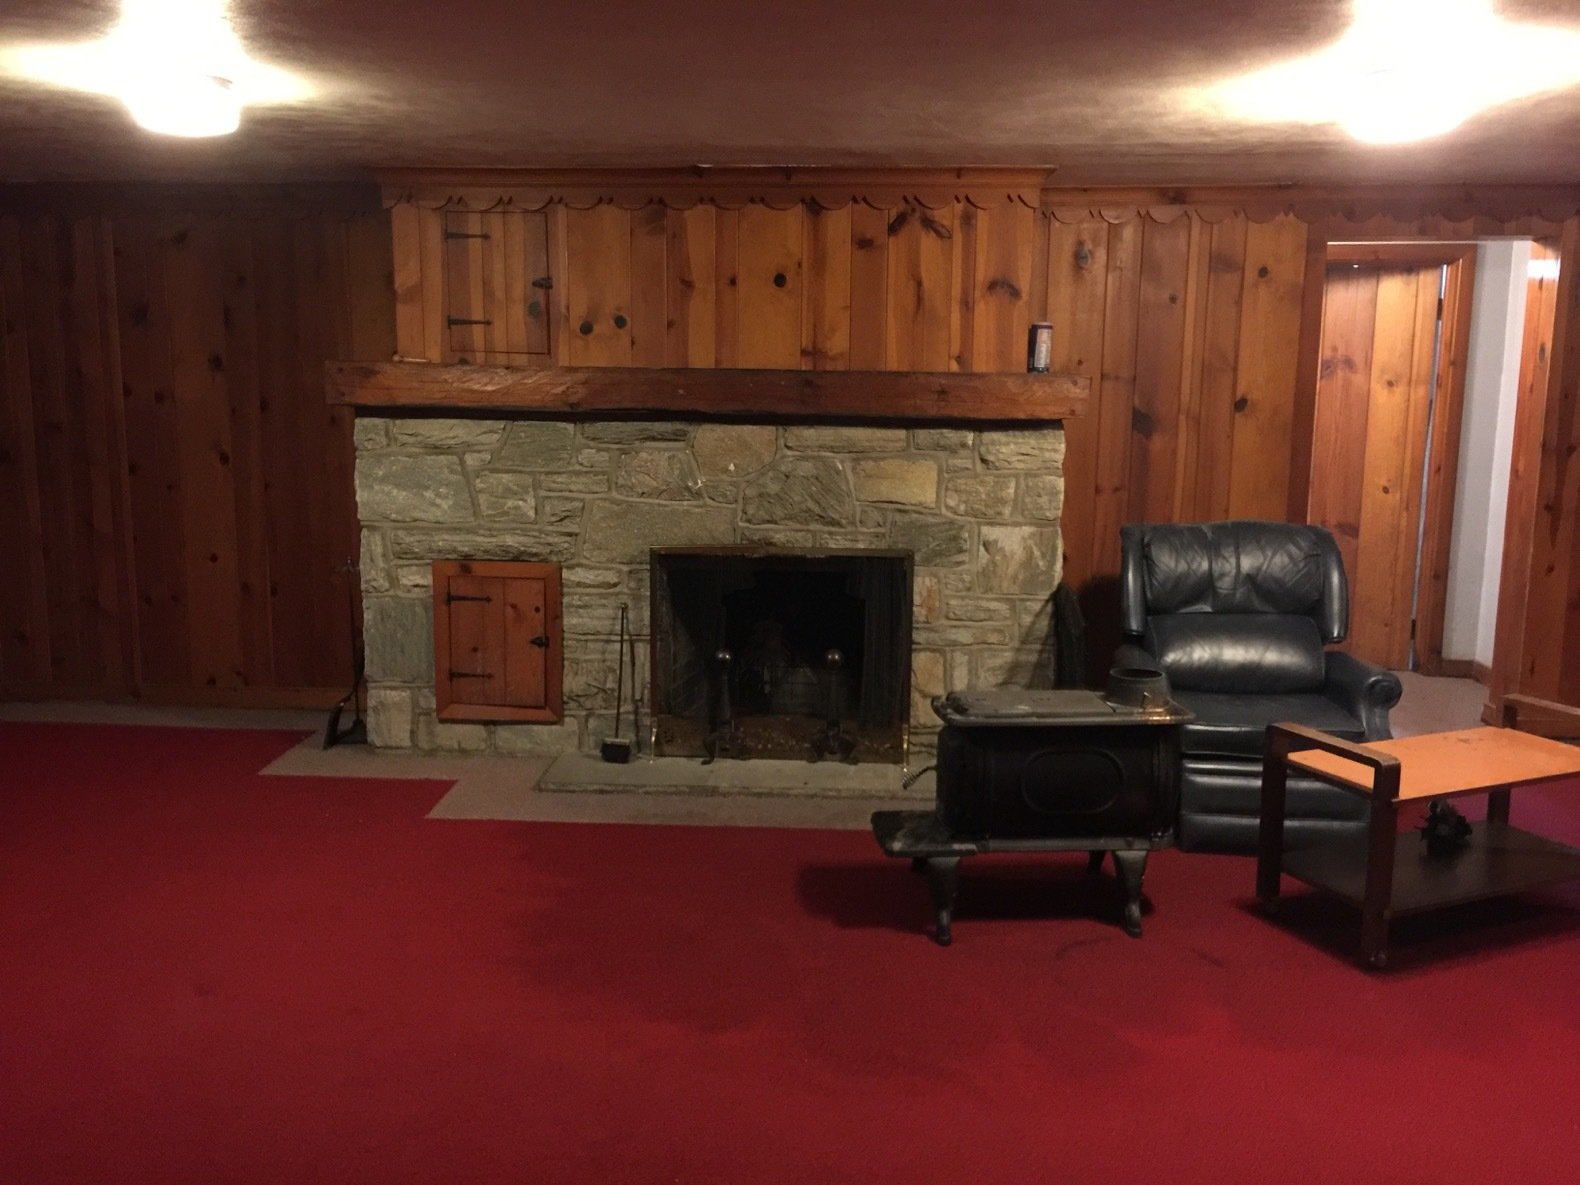 Dated wood paneling and stone surround were part of the original basement.